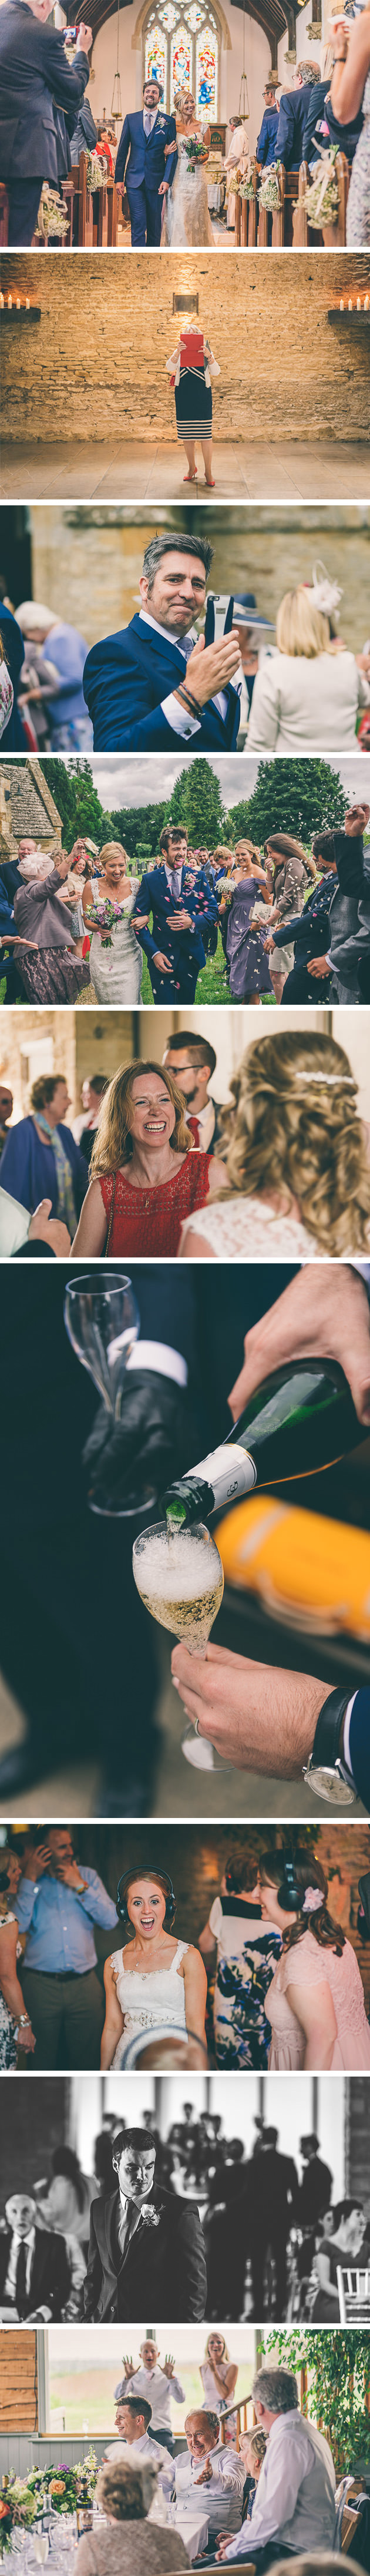 Pouring prosecco at a wedding